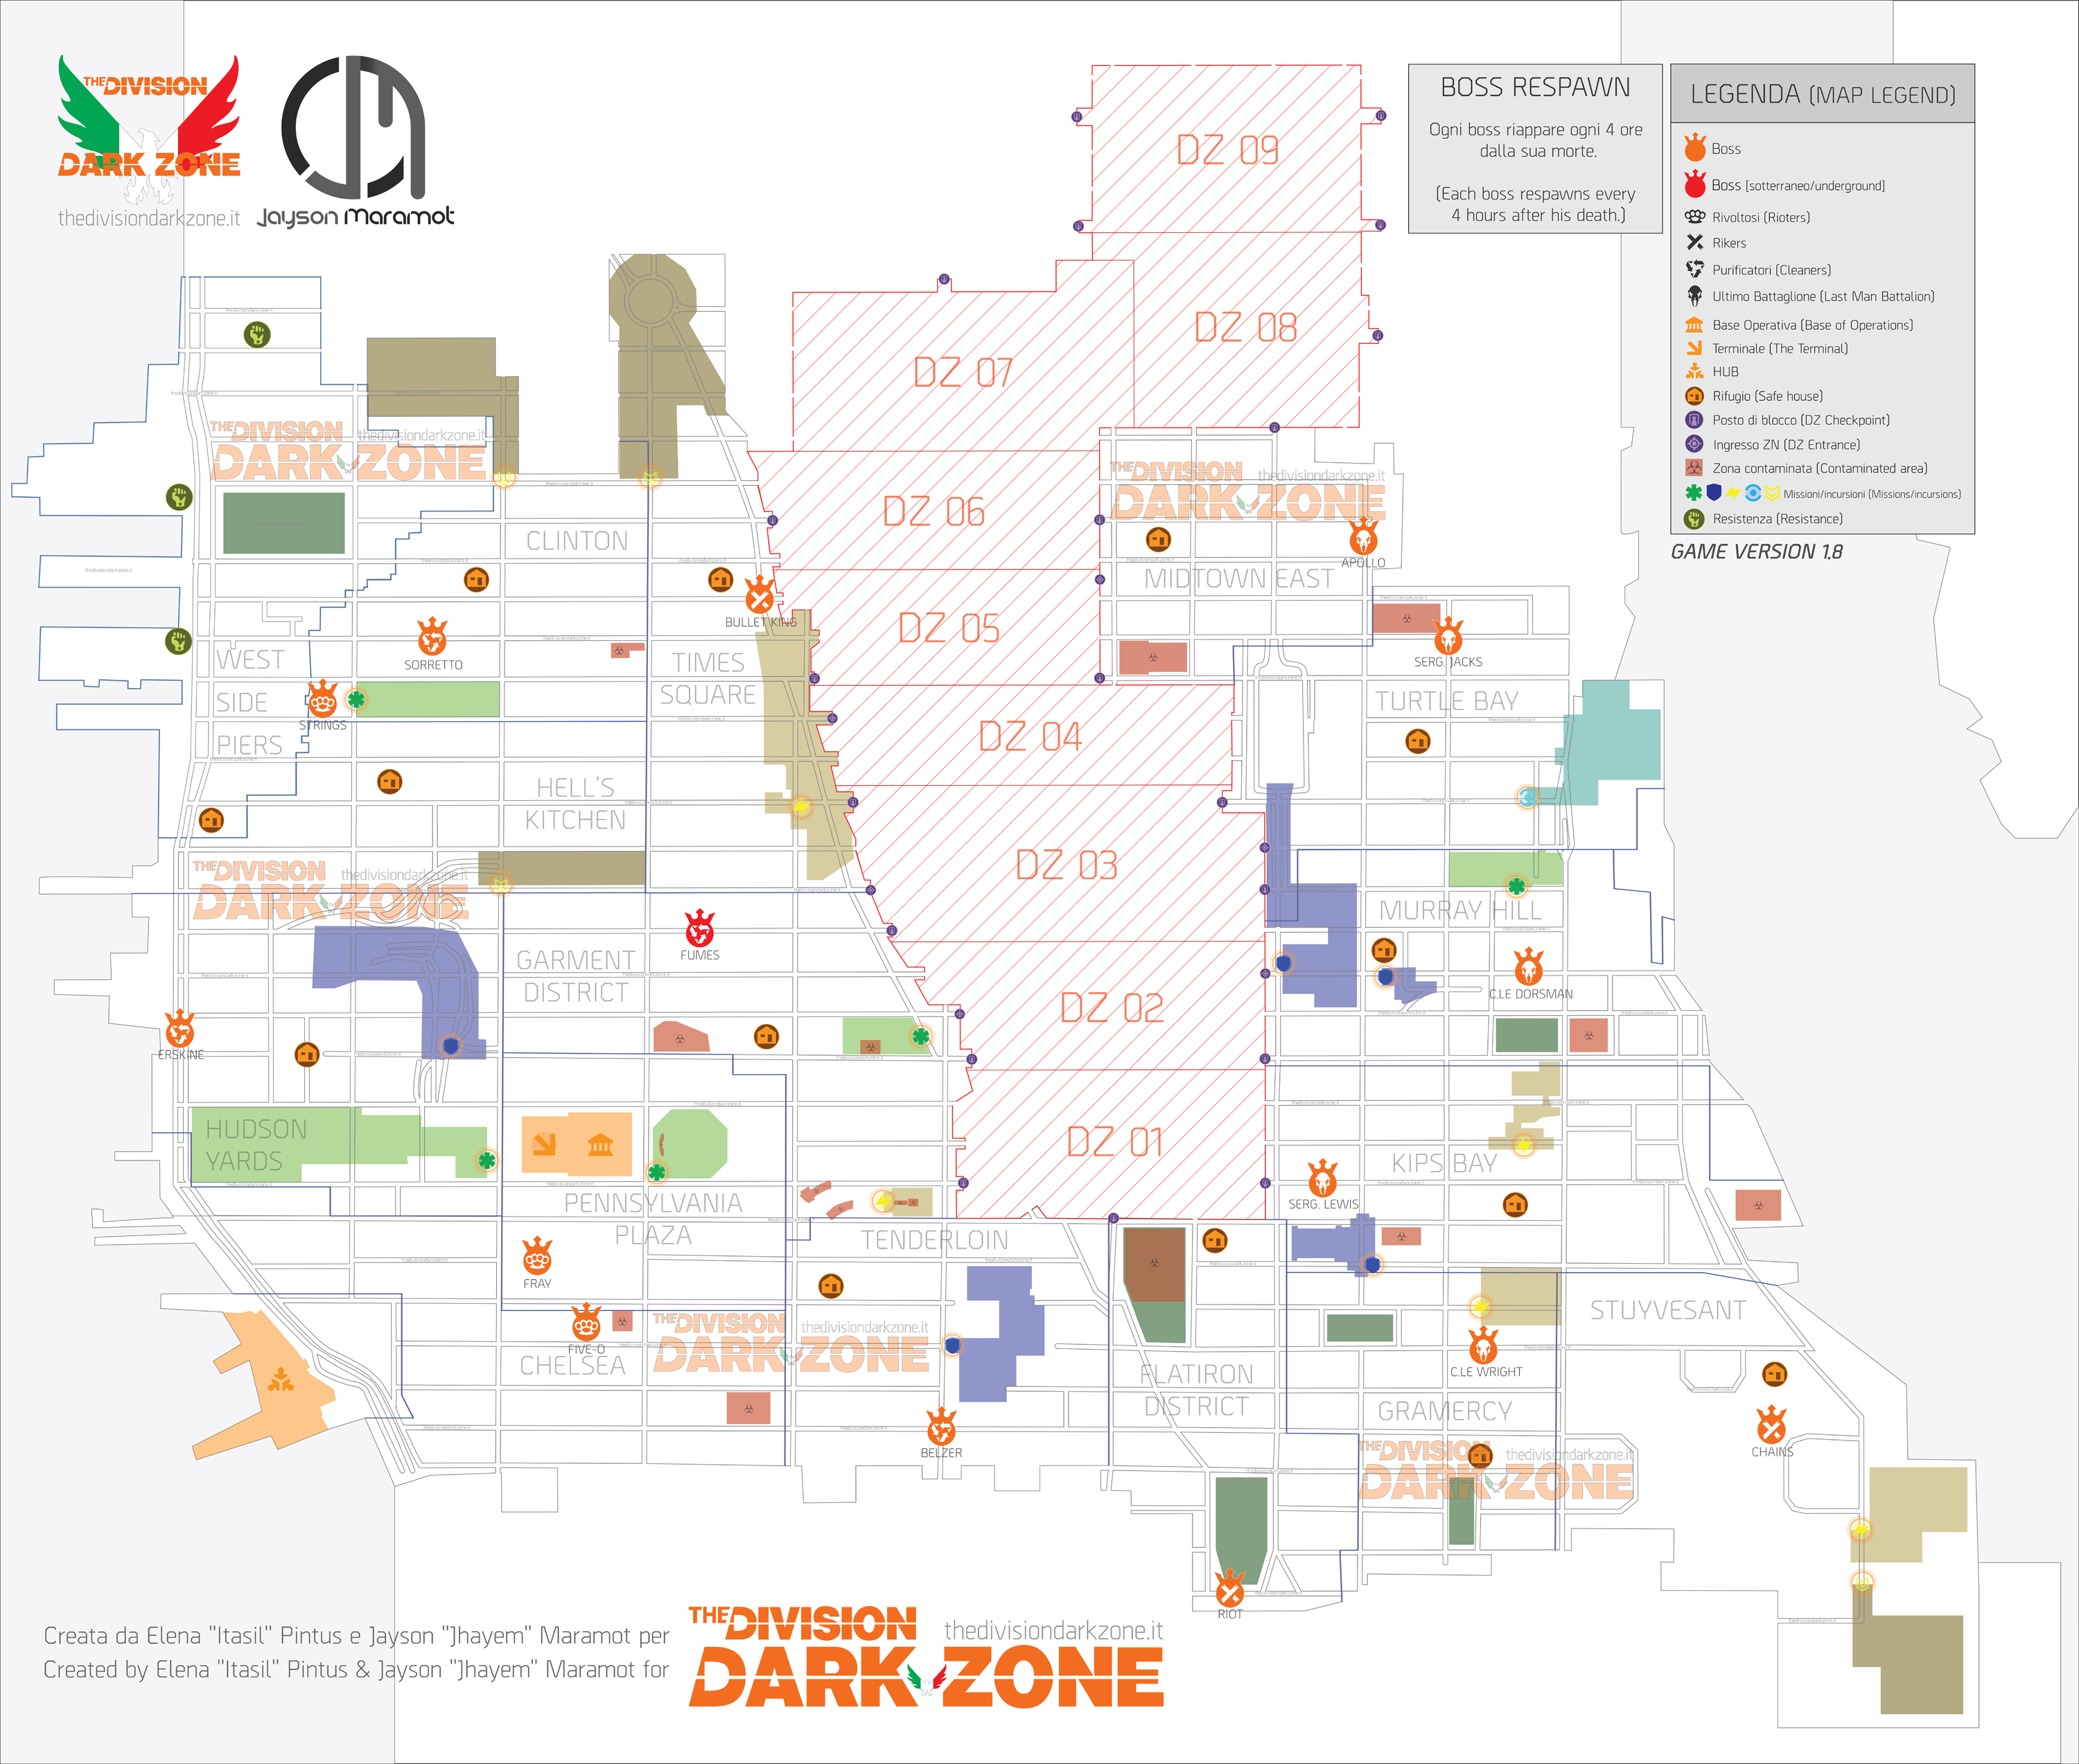 Map Of World Bosses In The Division.Dark Zone And Pve Boss Maps Updated By The Division Dark Zone